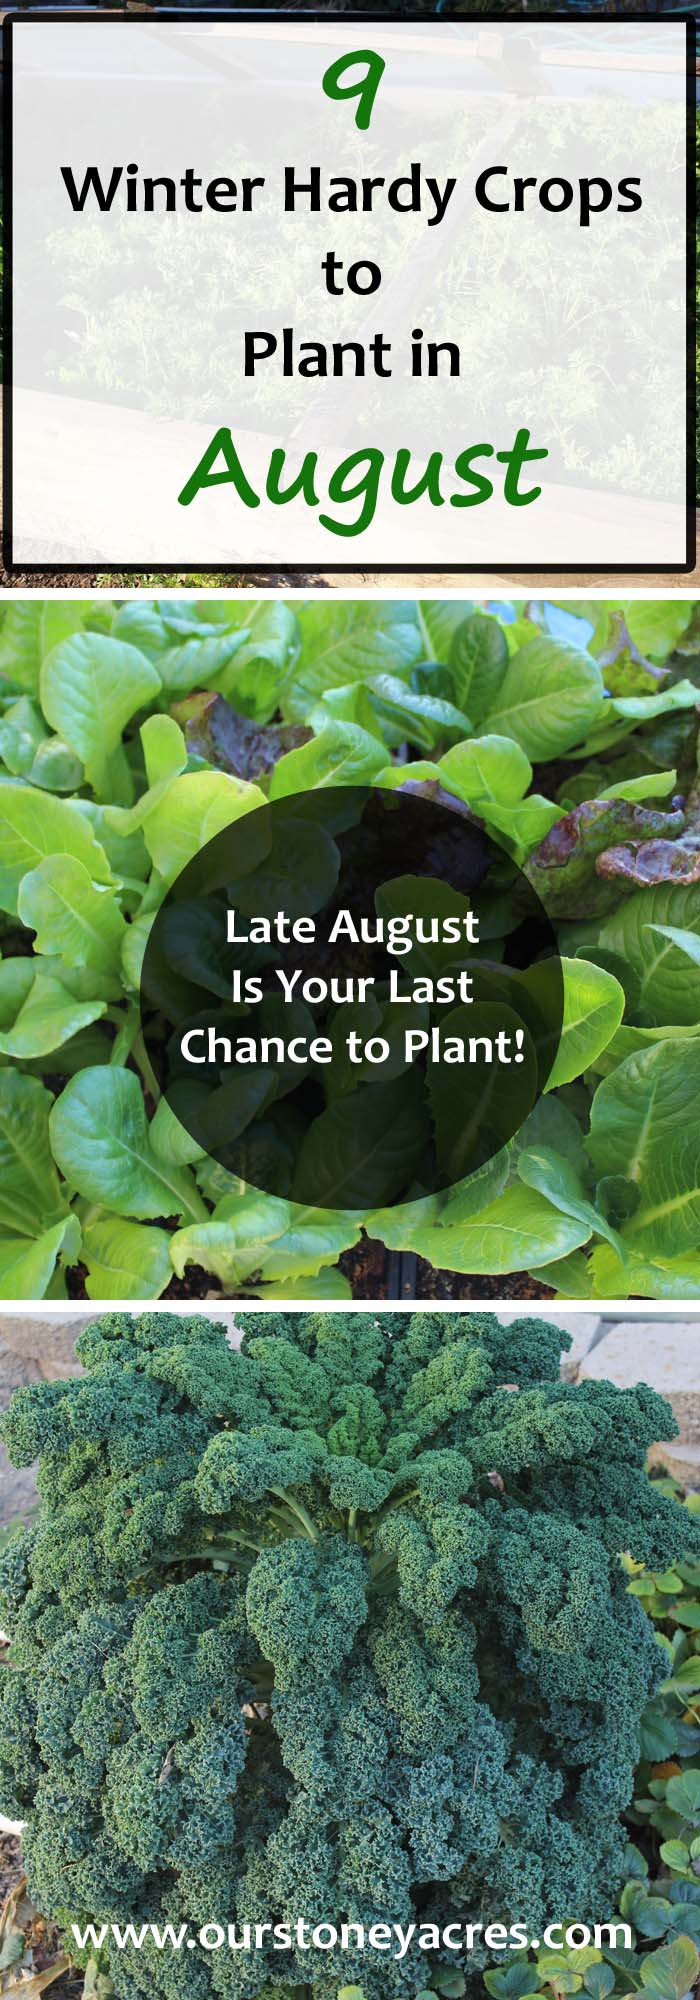 9 Crops You Can Plant In August For Fall And Winter Harvest Stoney Acres